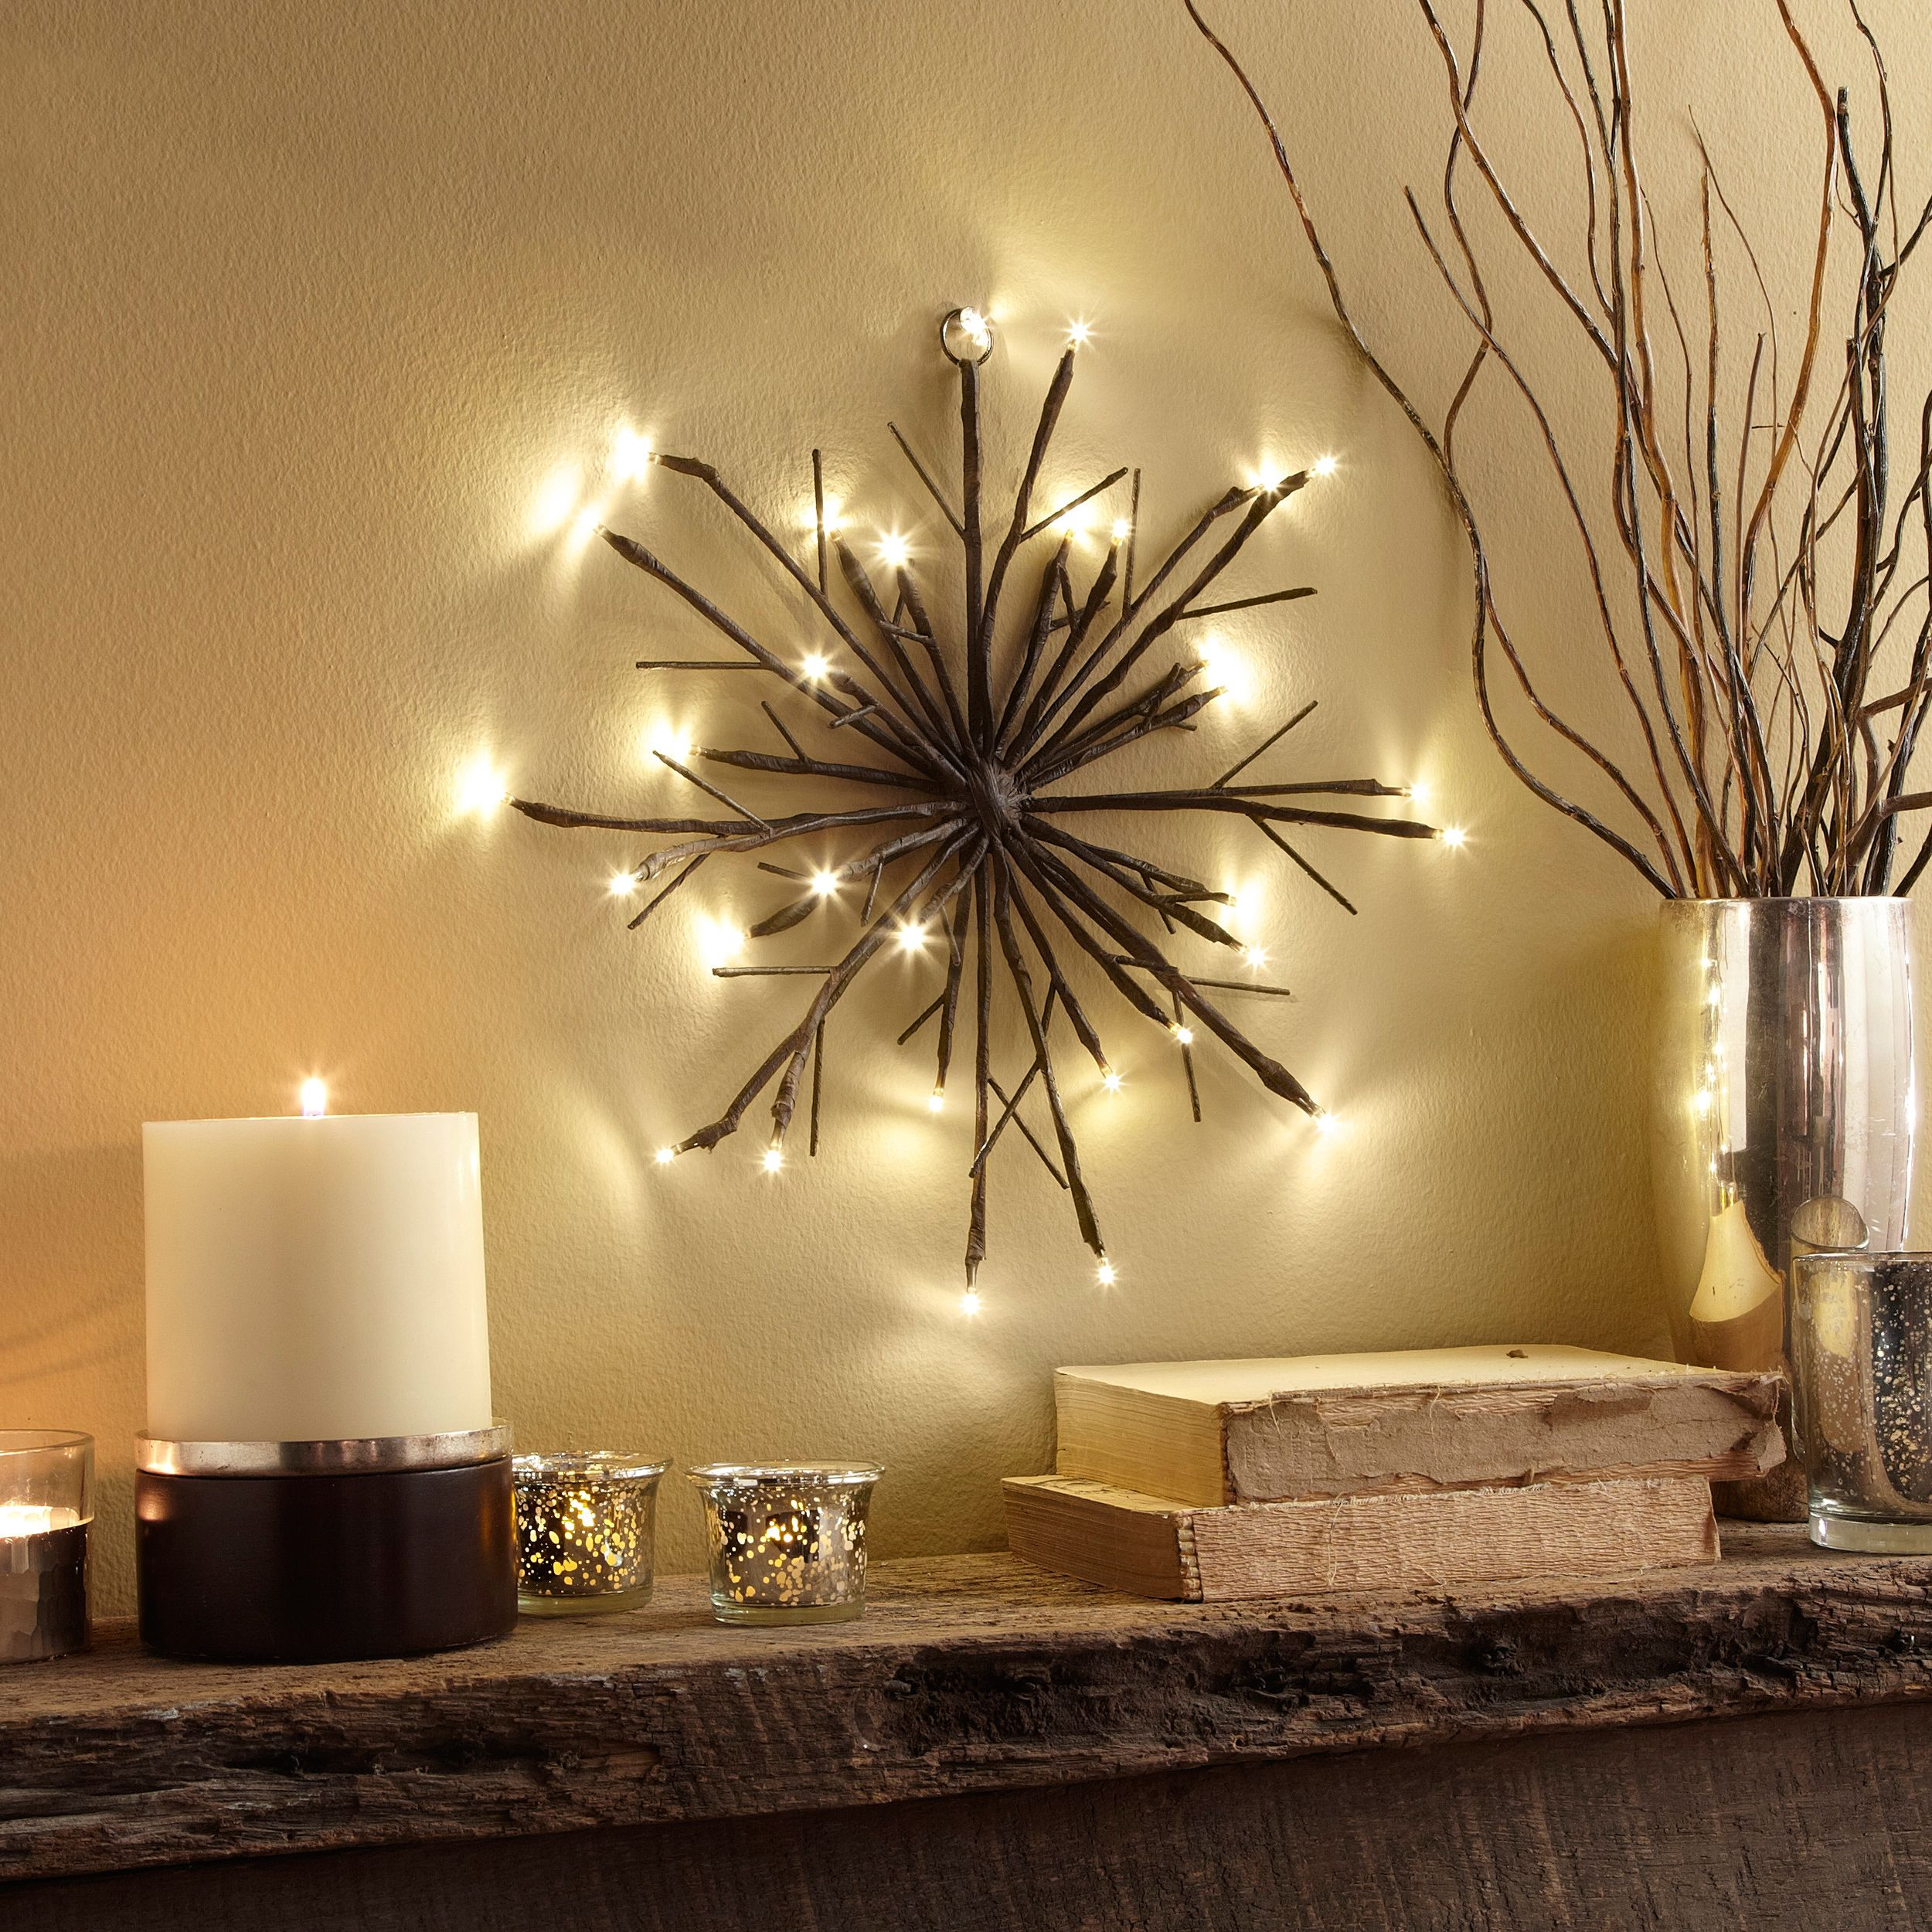 Bring Glowing Led Lights To Your Home With The Order